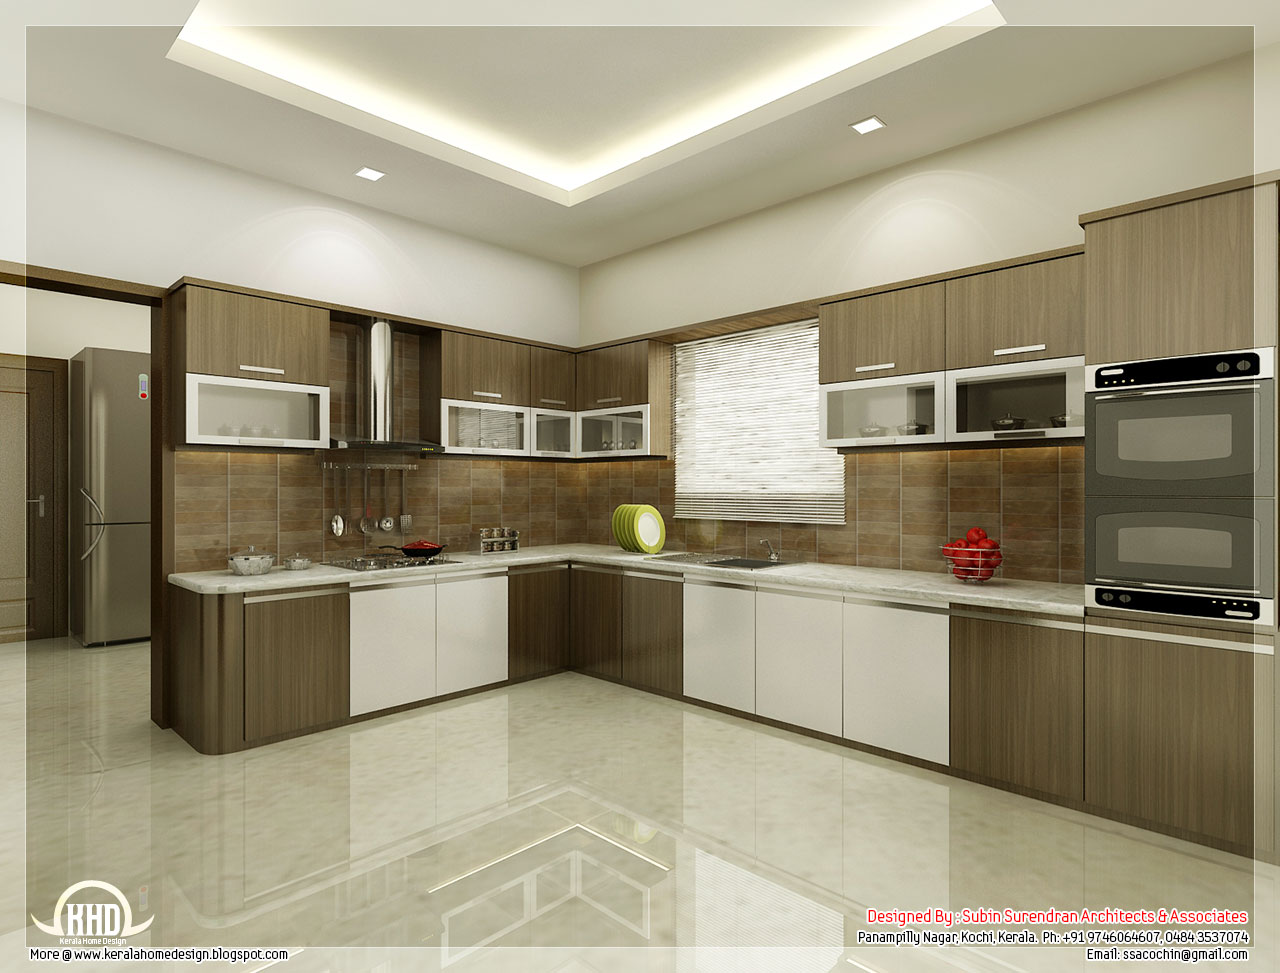 interior home design kitchen kitchen interior design home d - Interior Designer Kitchens